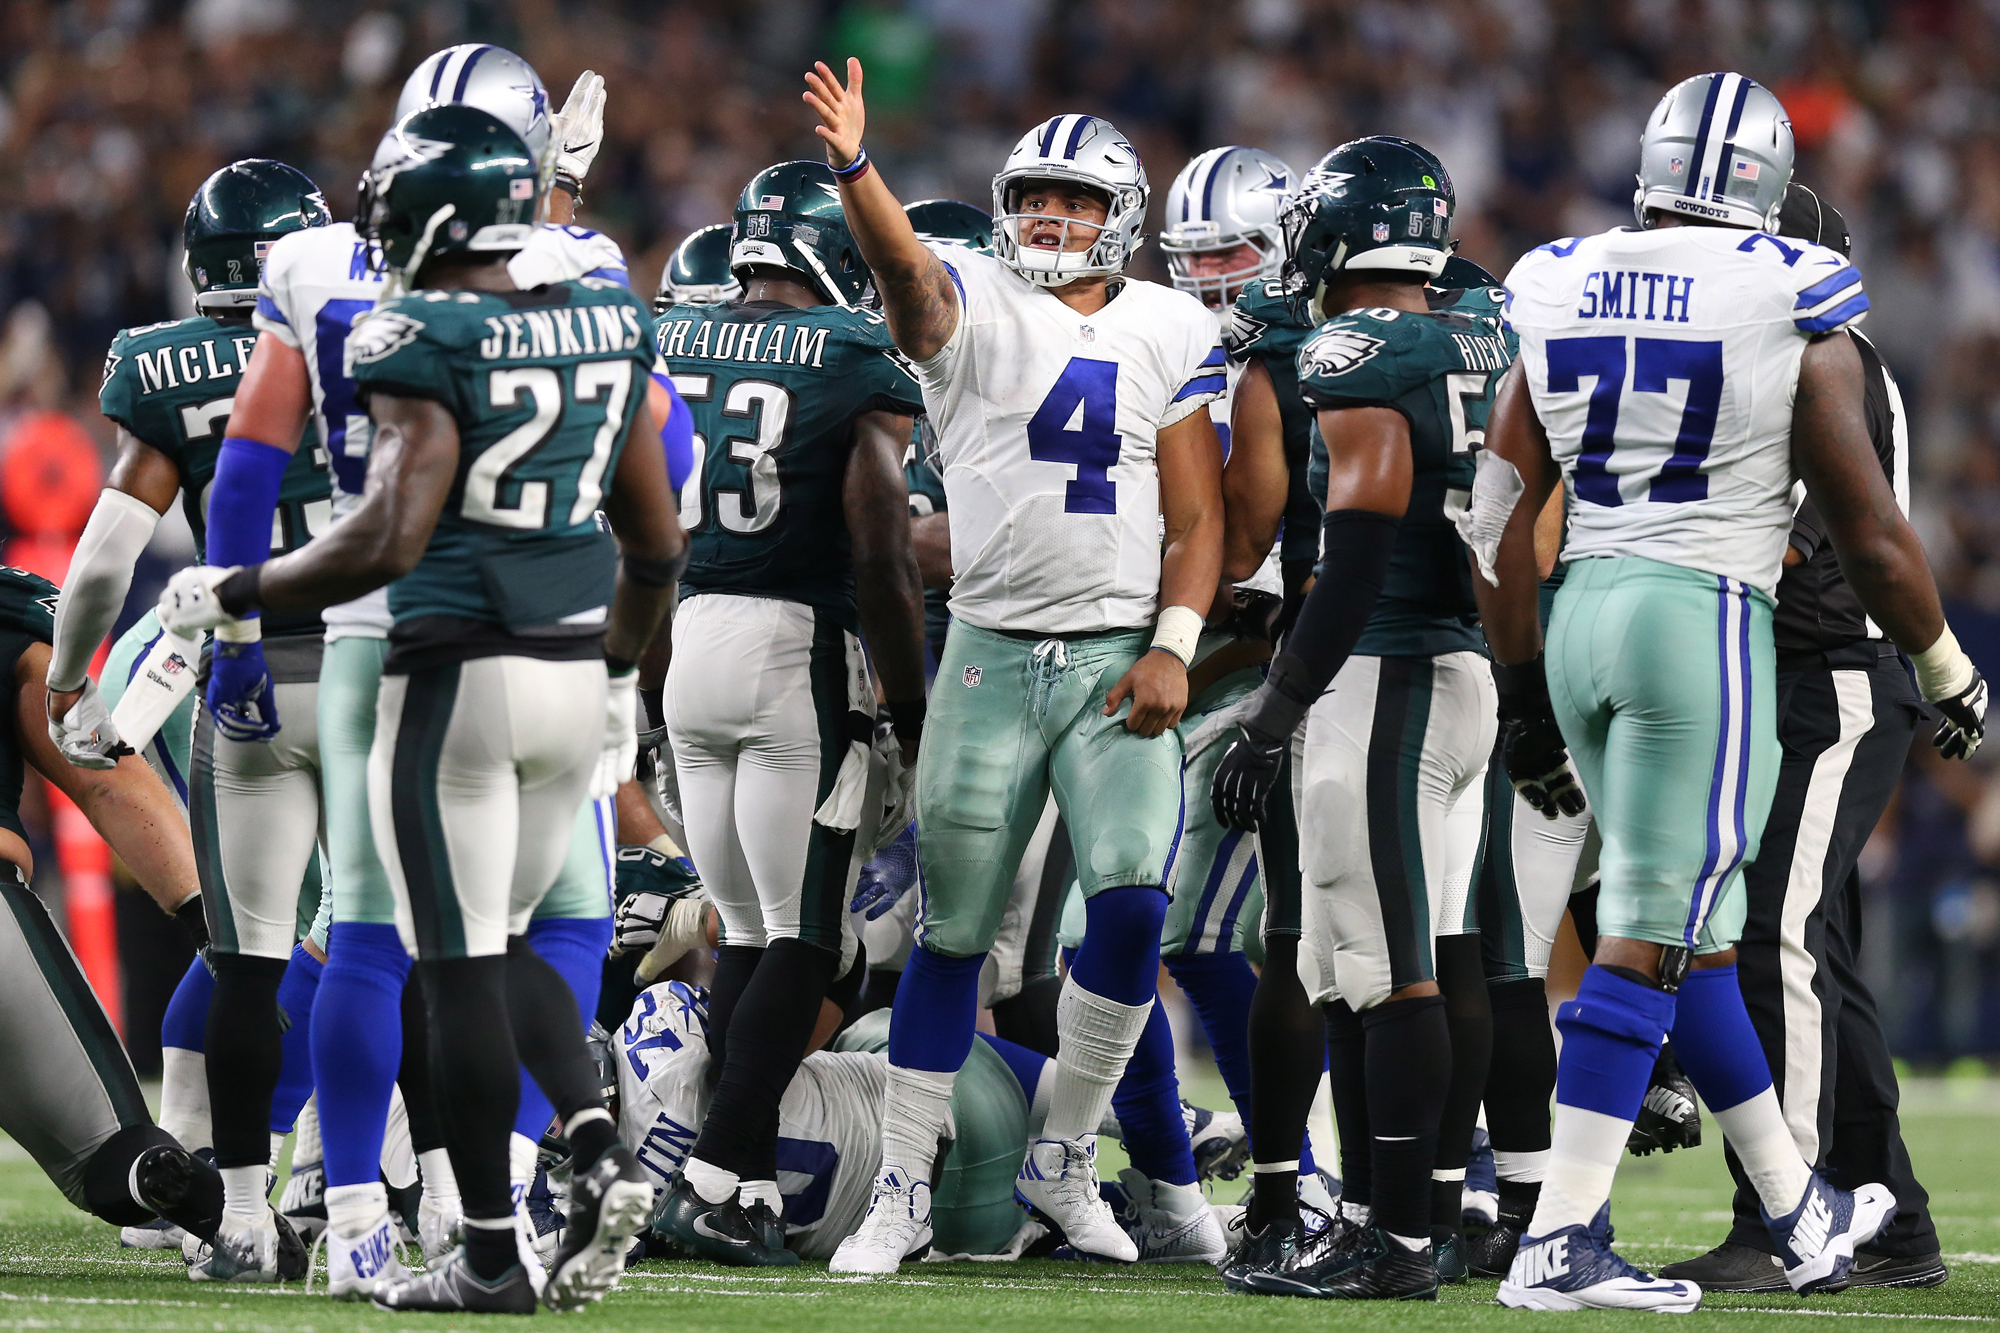 Dallas Cowboys quarterback Dak Prescott (4) signals a first down in overtime after a quarterback sneak on fourth down against the Philadelphia Eagles at AT&T Stadium. The Cowboys beat the Eagles 29-23 in overtime.